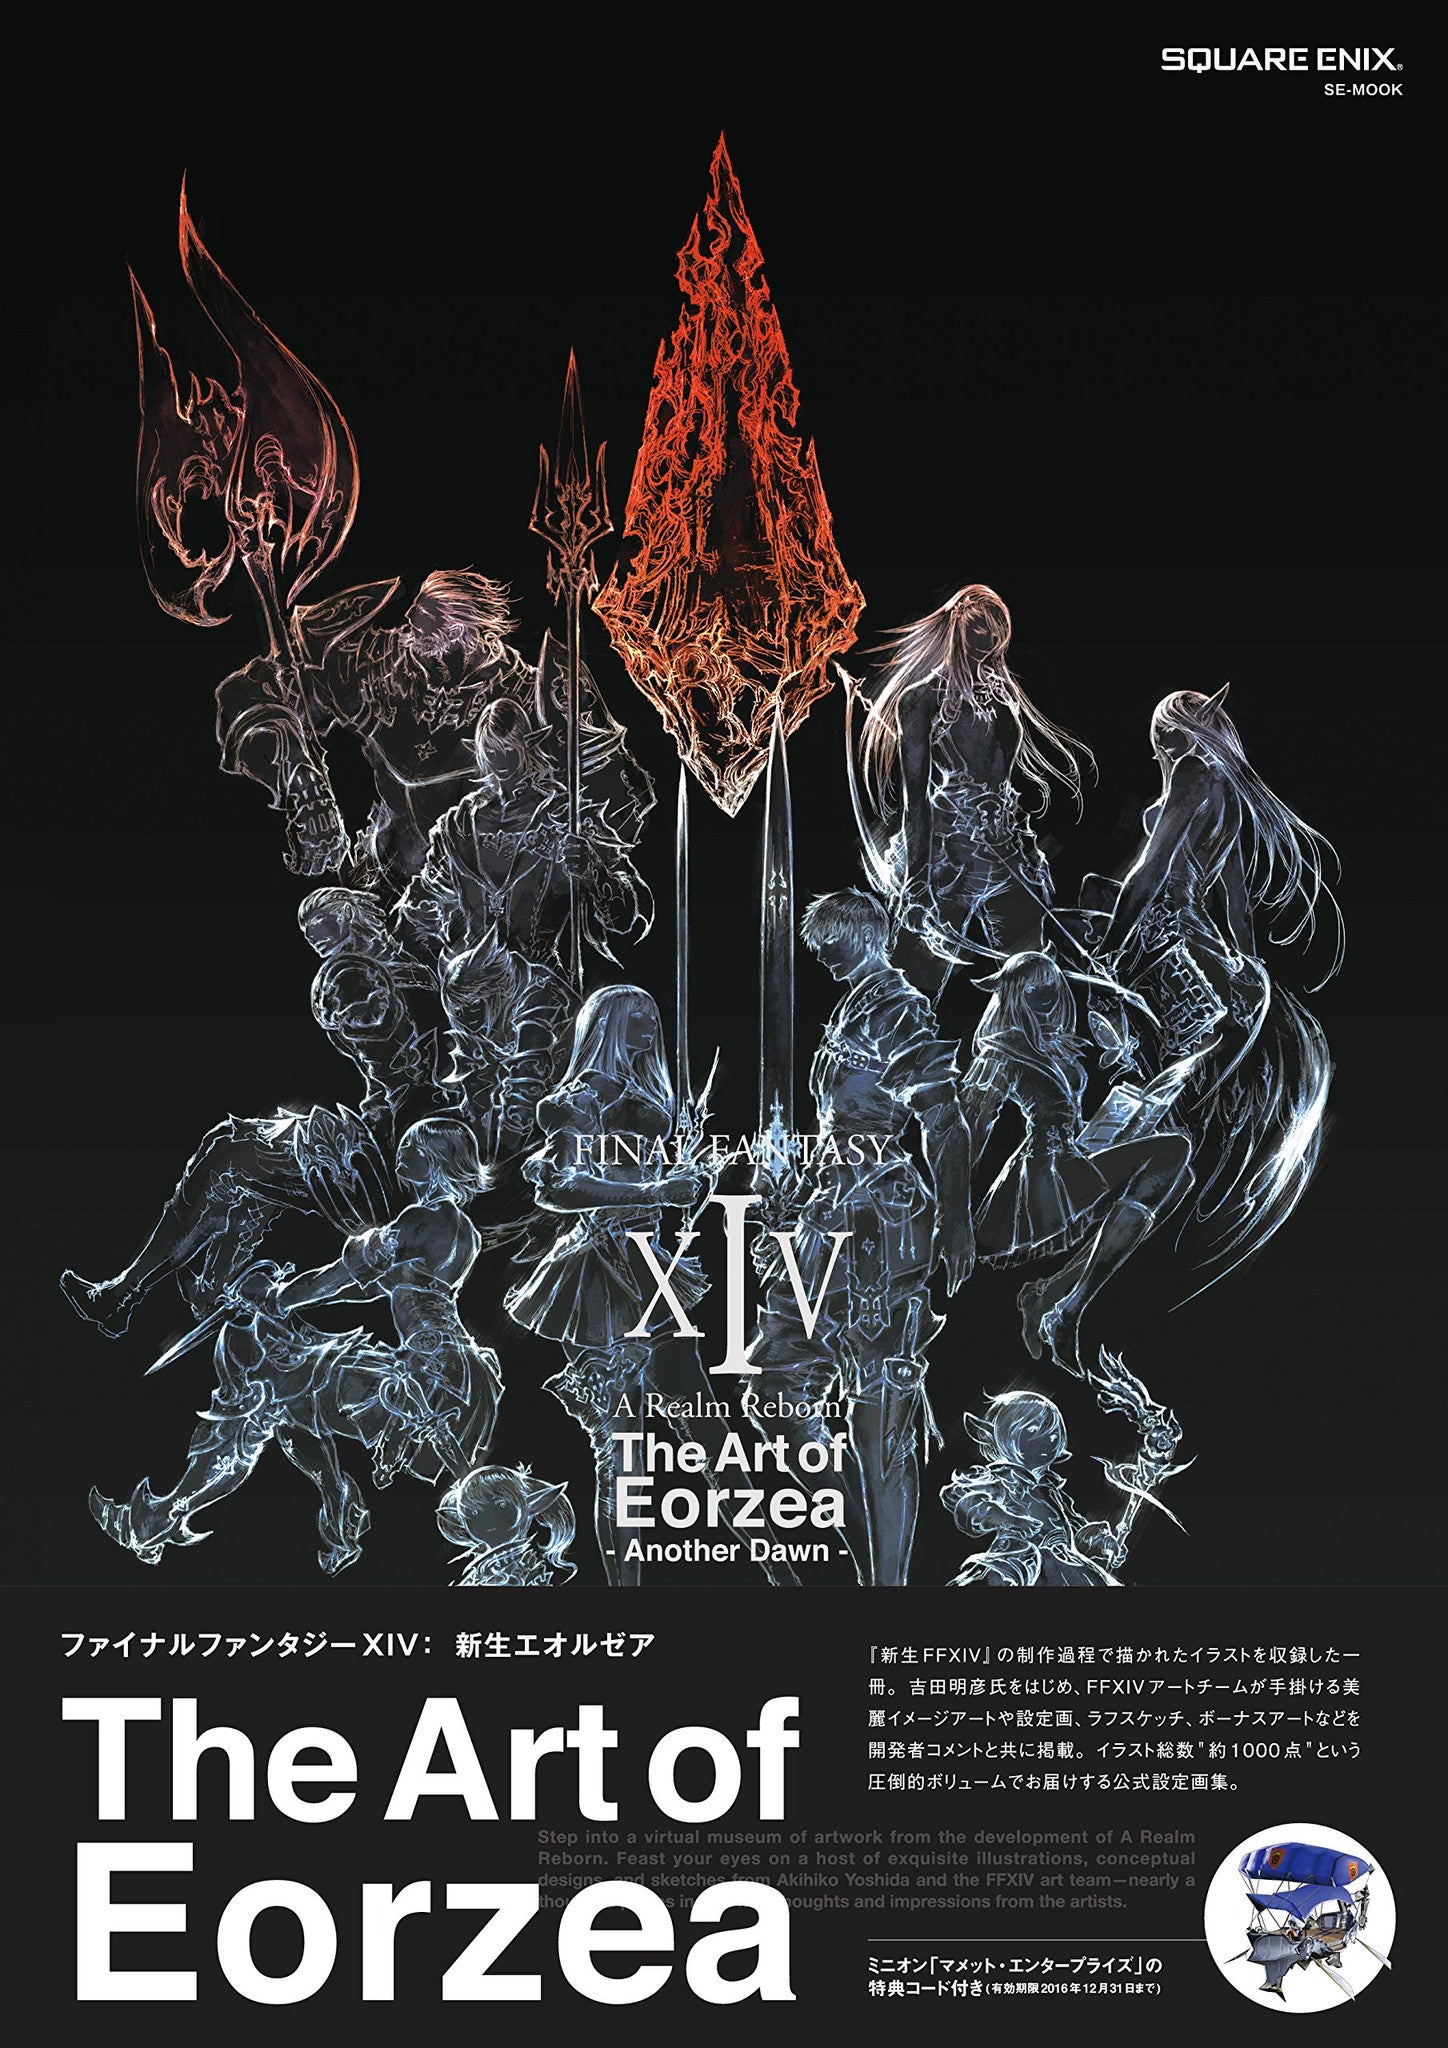 Image 1 for FINAL FANTASY XIV: A Realm Reborn The Art of Eorzea - Another Dawn [e-Store Edition]